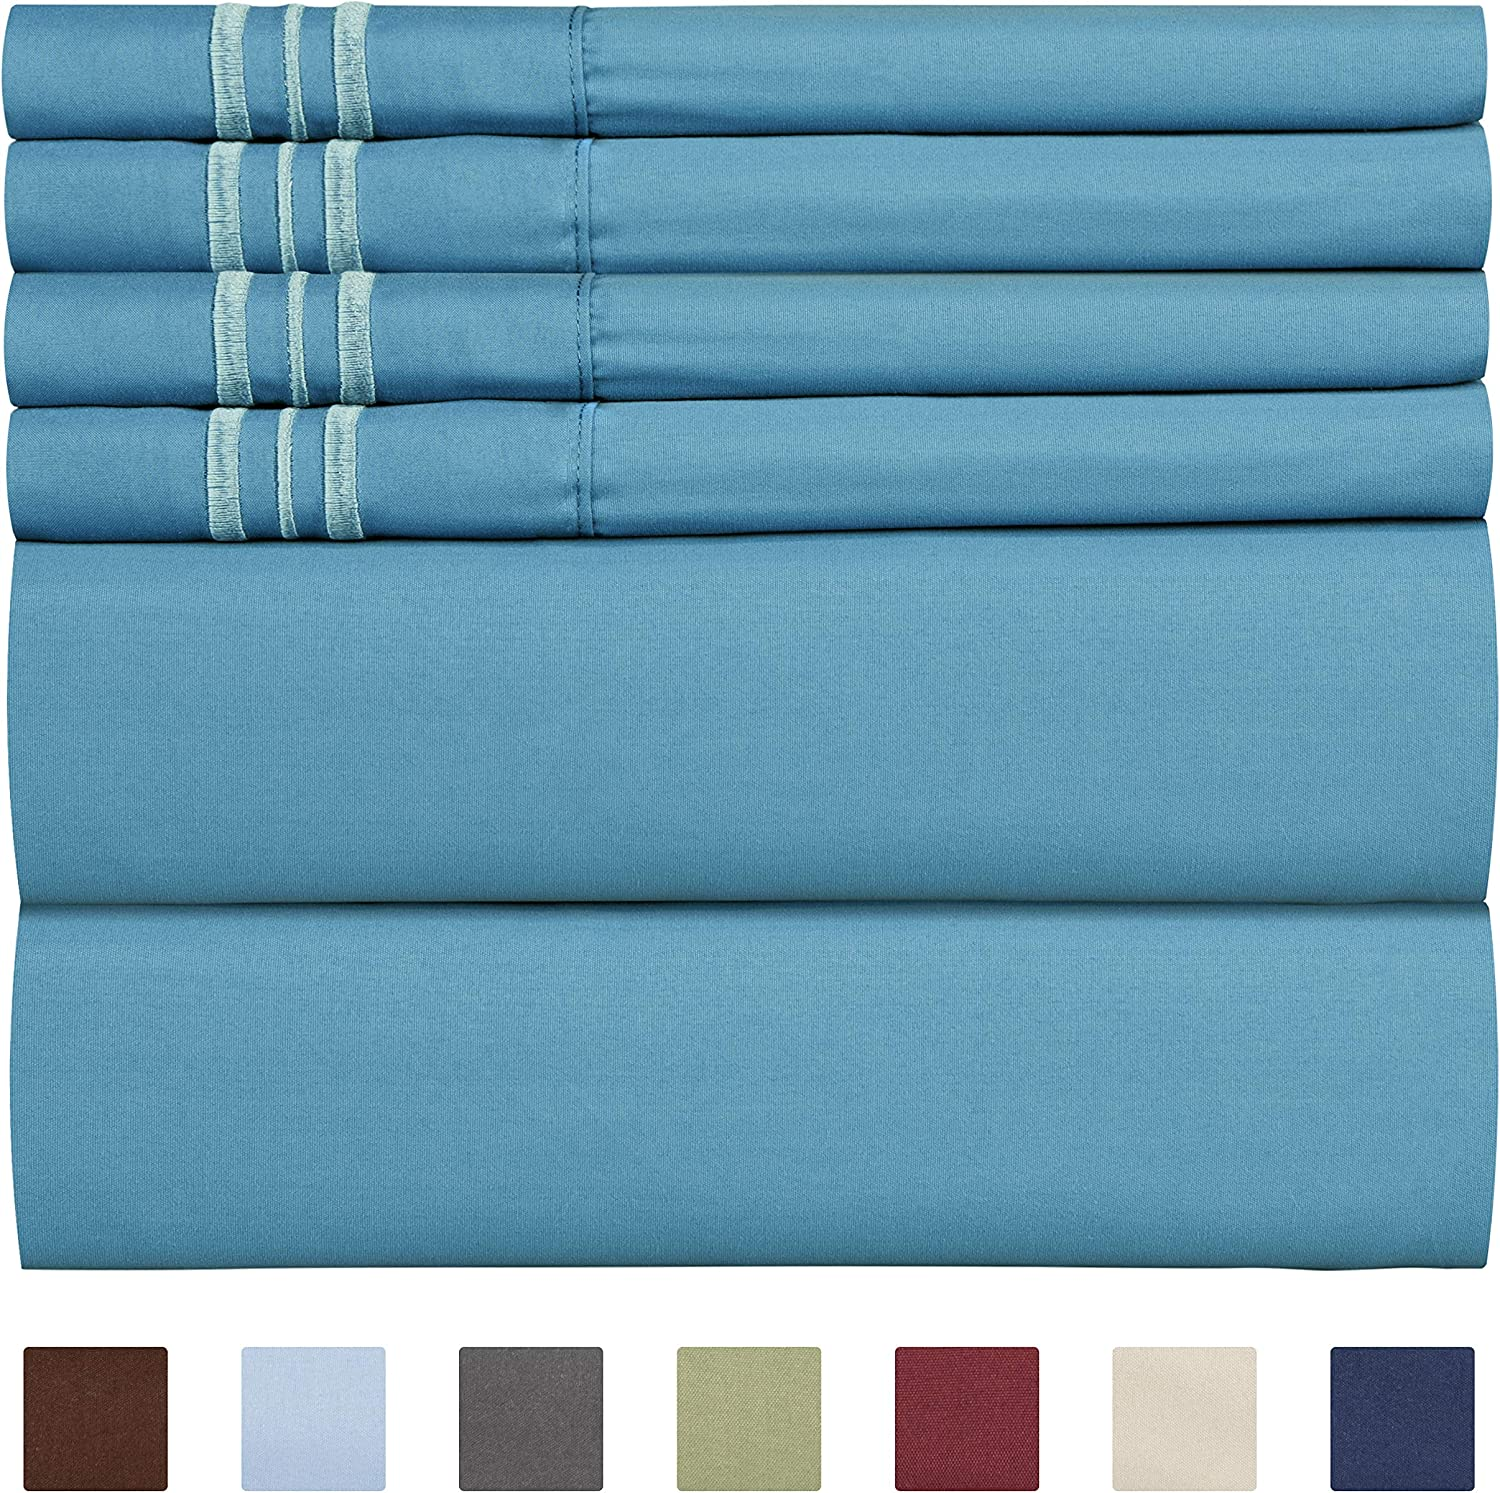 Full Size Sheet Set - 6 Piece Set - Hotel Luxury Bed Sheets - Extra Soft - Deep Pockets - Easy Fit - Breathable & Cooling Sheets - Wrinkle Free - Comfy – Denim Blue Bed Sheets - Fulls Sheets - 6 PC